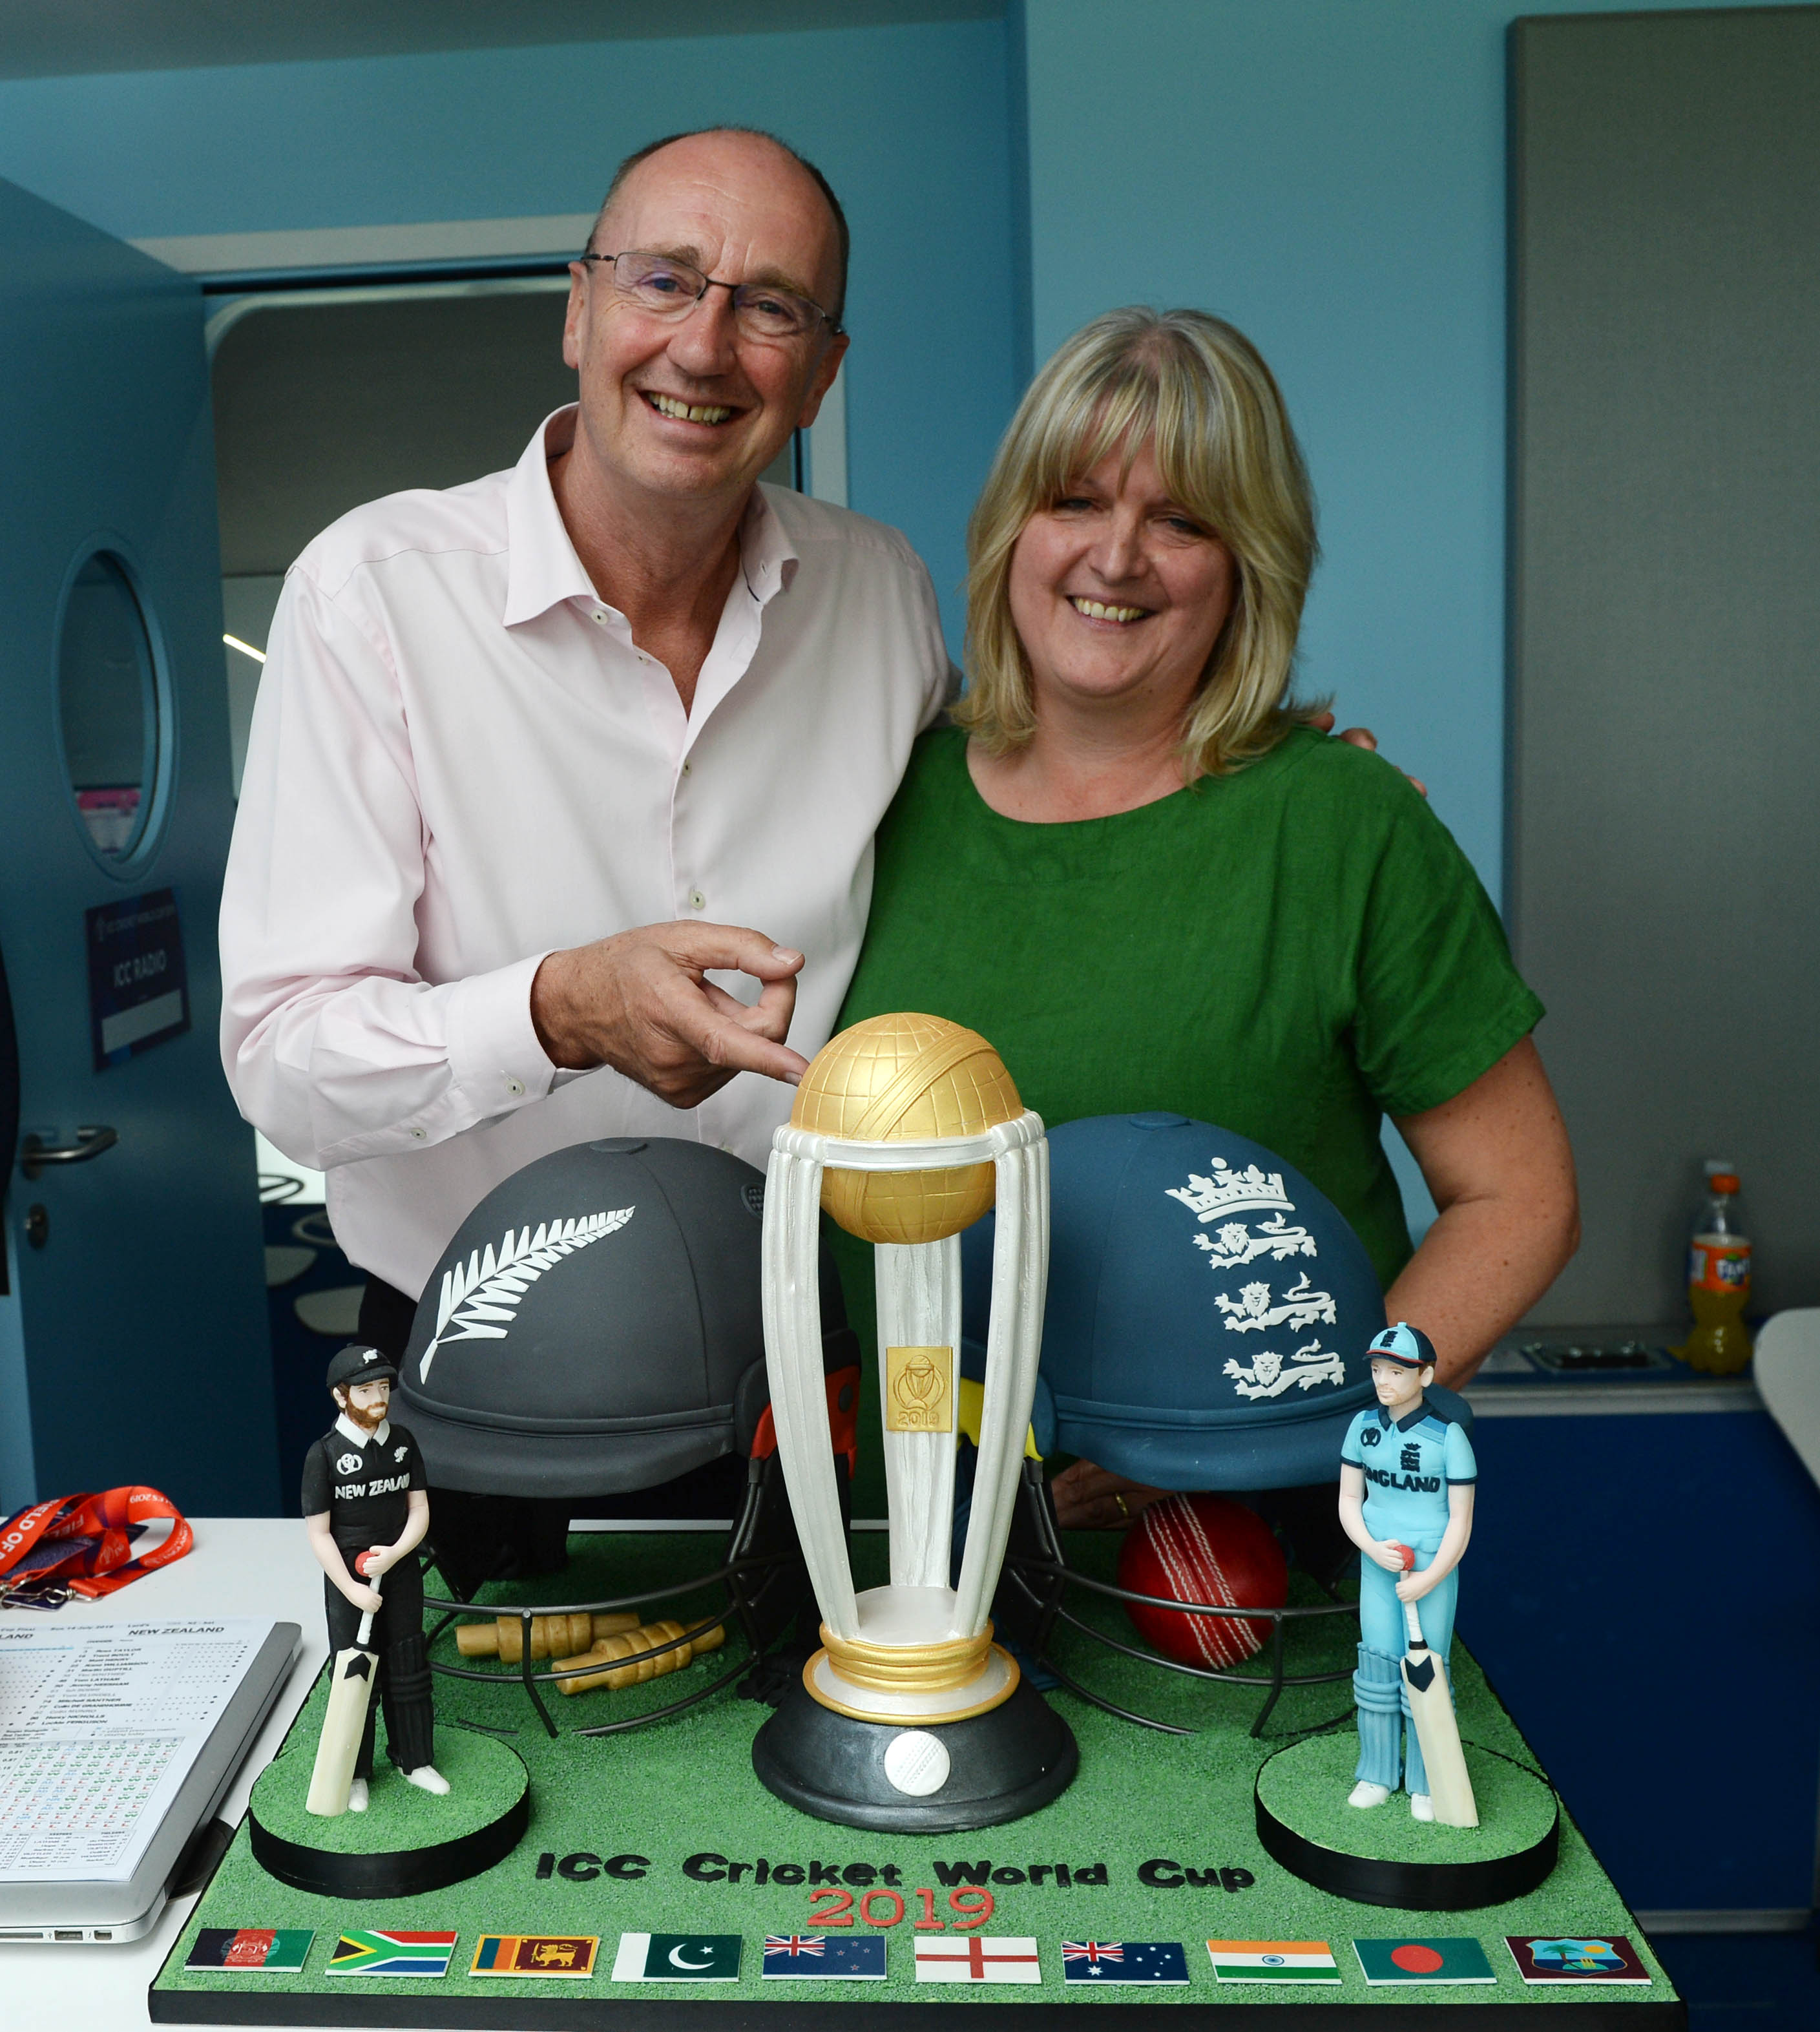 Test Match Special commentator Jonathan Agnew and cake maker Julie Brownlee